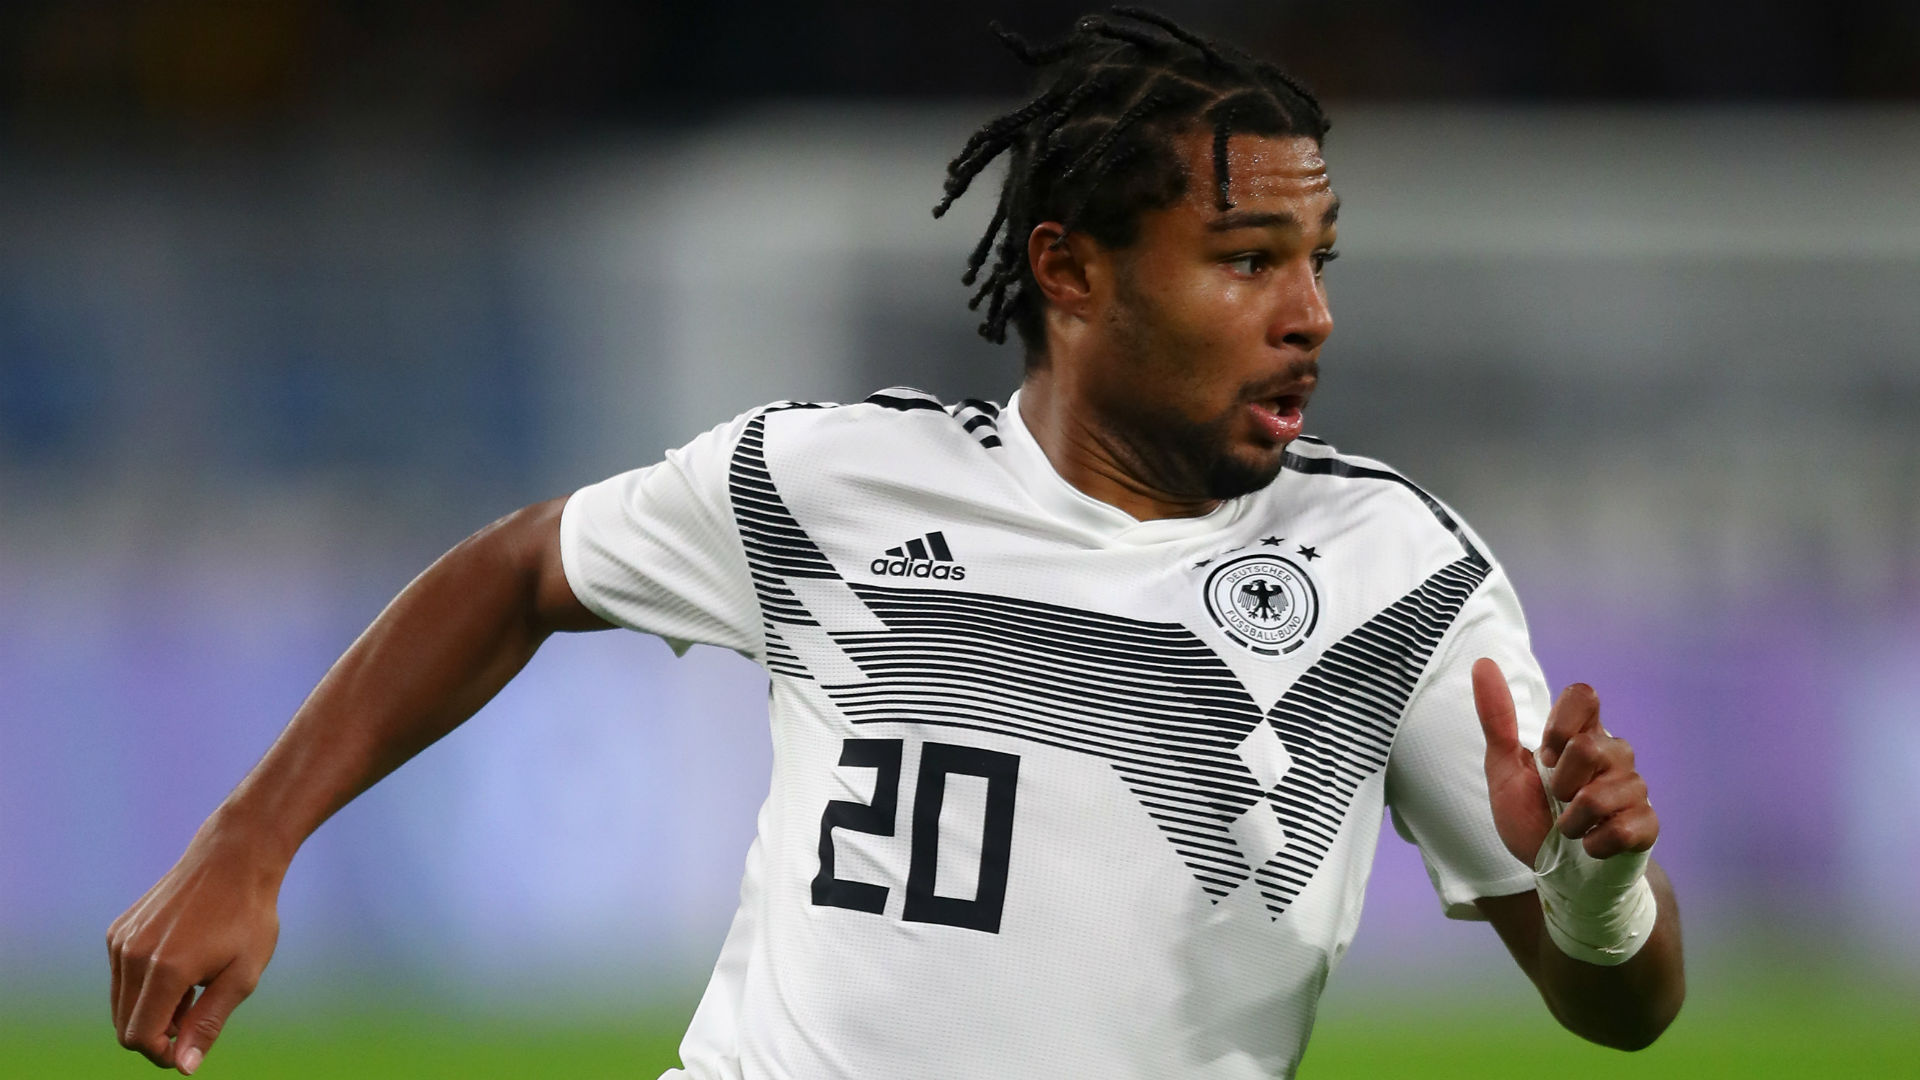 Low wanted to take 18-year-old Gnabry to 2014 World Cup